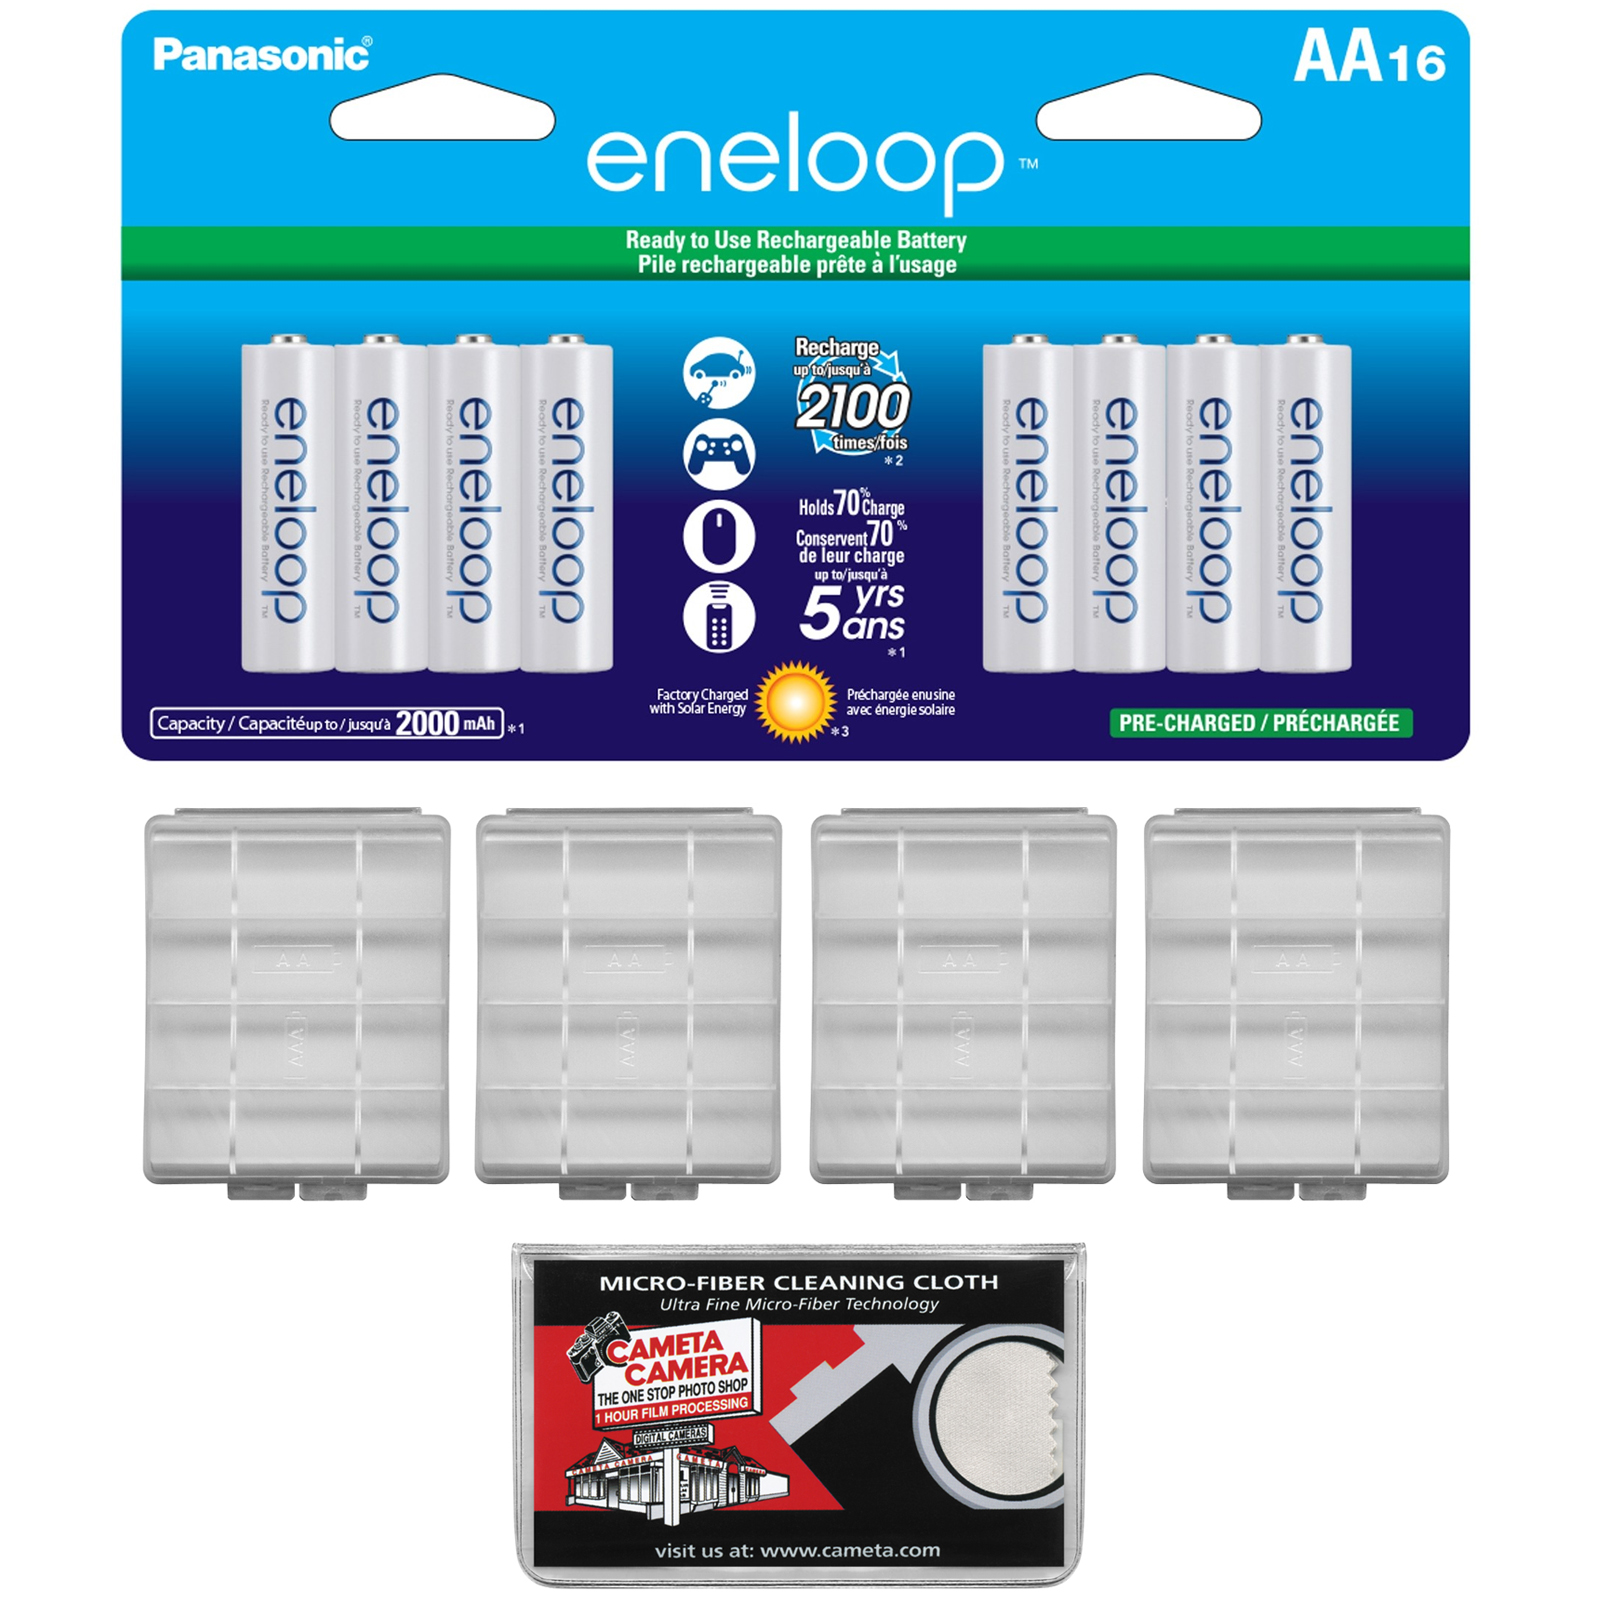 Panasonic eneloop (16) AA 2000mAh Pre-Charged NiMH Rechargeable Batteries with (4) AA Battery Cases + Microfiber Cleaning Cloth